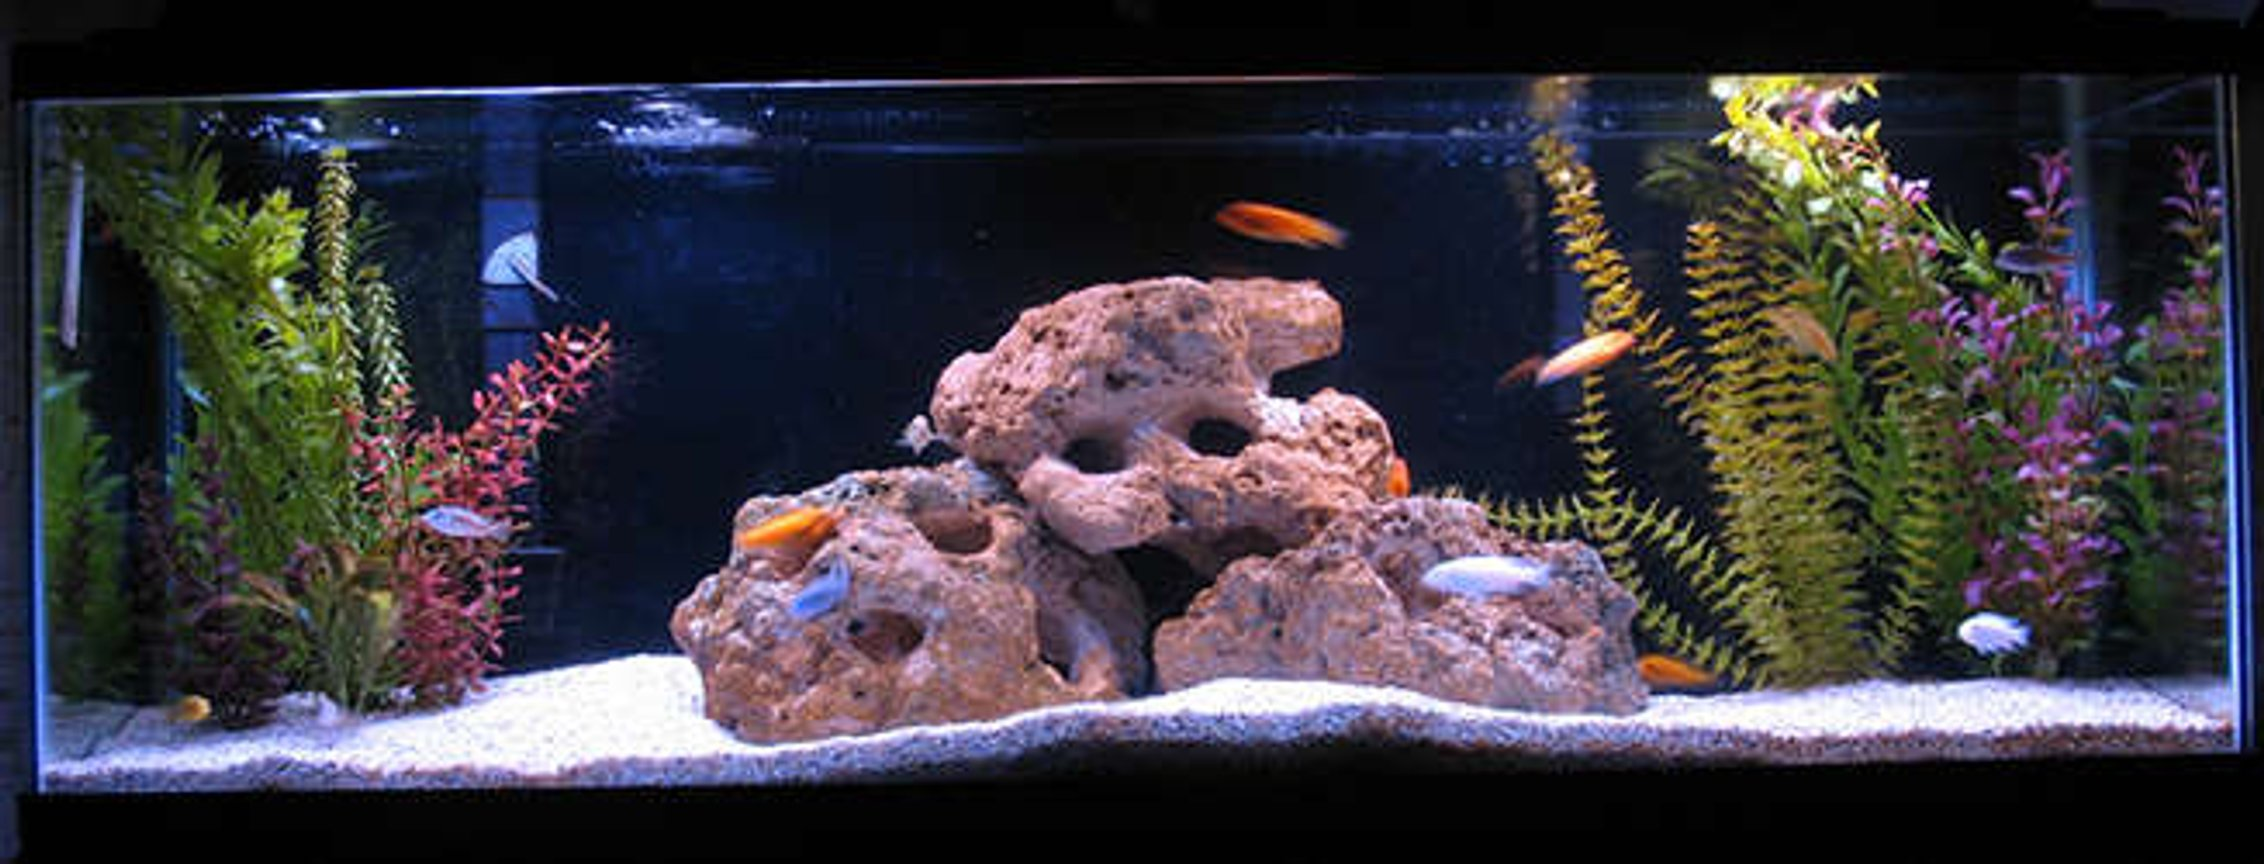 55 gallons freshwater fish tank (mostly fish and non-living decorations) - Zebras, Exasperatus, and Tropheops.